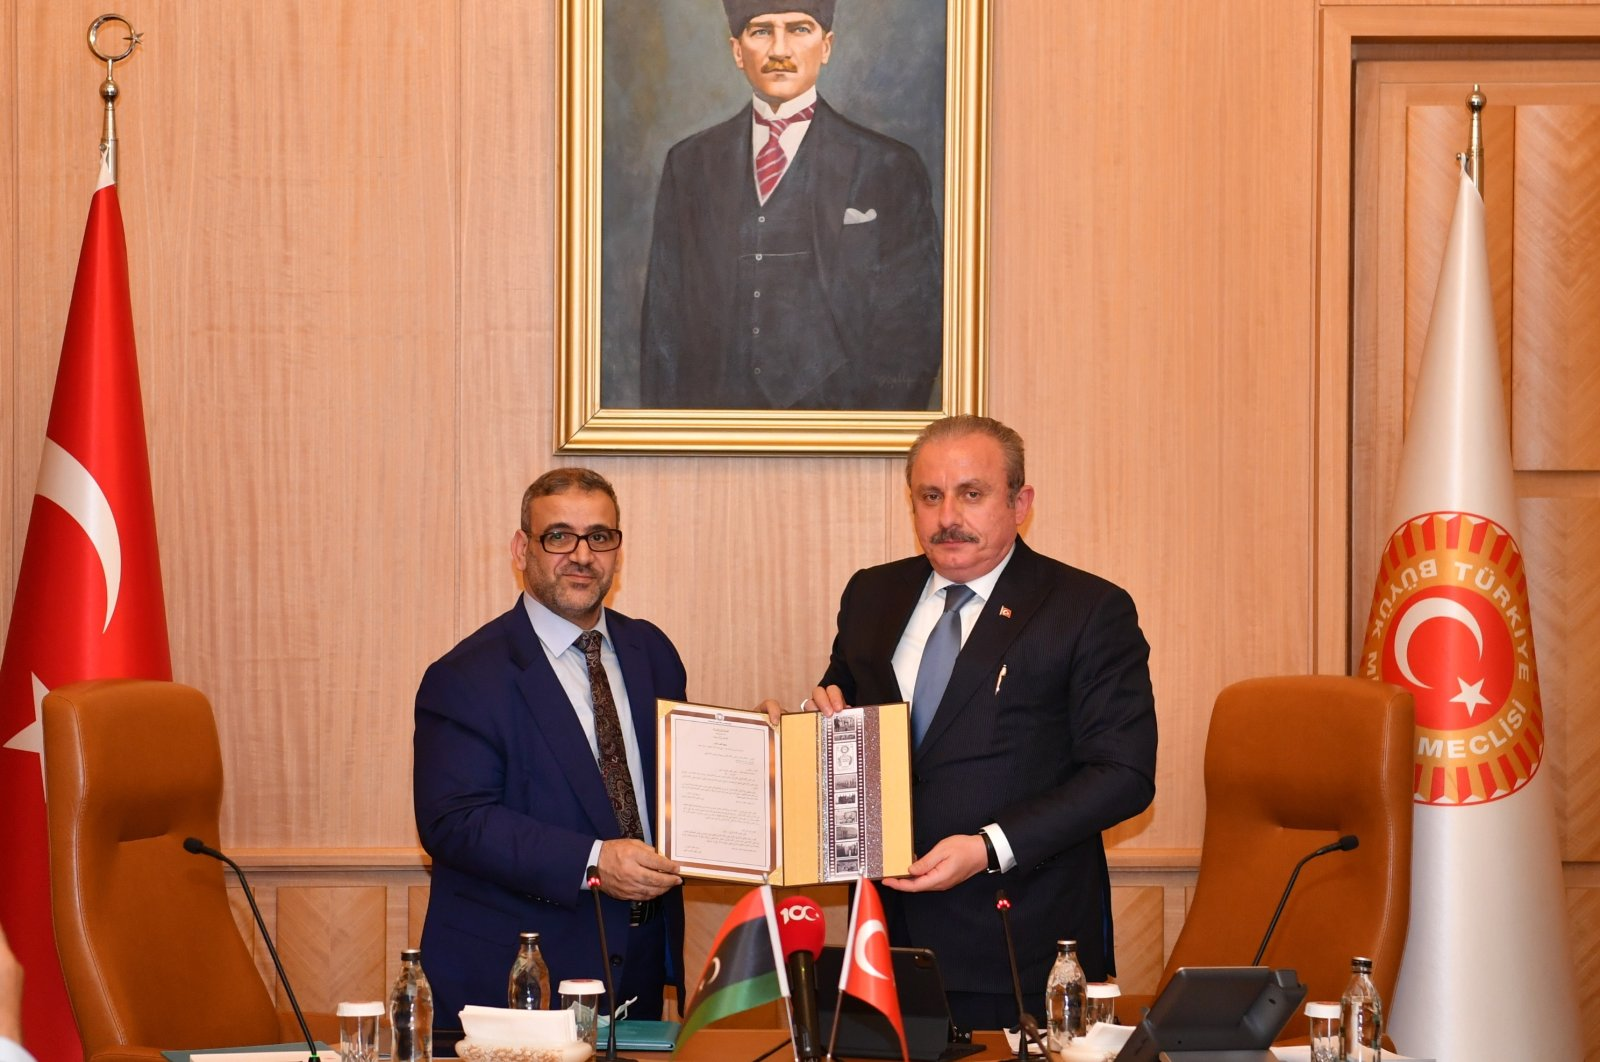 Turkey's Parliament Speaker Mustafa Şentop (R) receives the chairperson of the Libyan High Council of State, Khalid al-Mishri, and his delegation in the Turkish capital, Ankara, Turkey, May 28, 2021. (AA Photo)